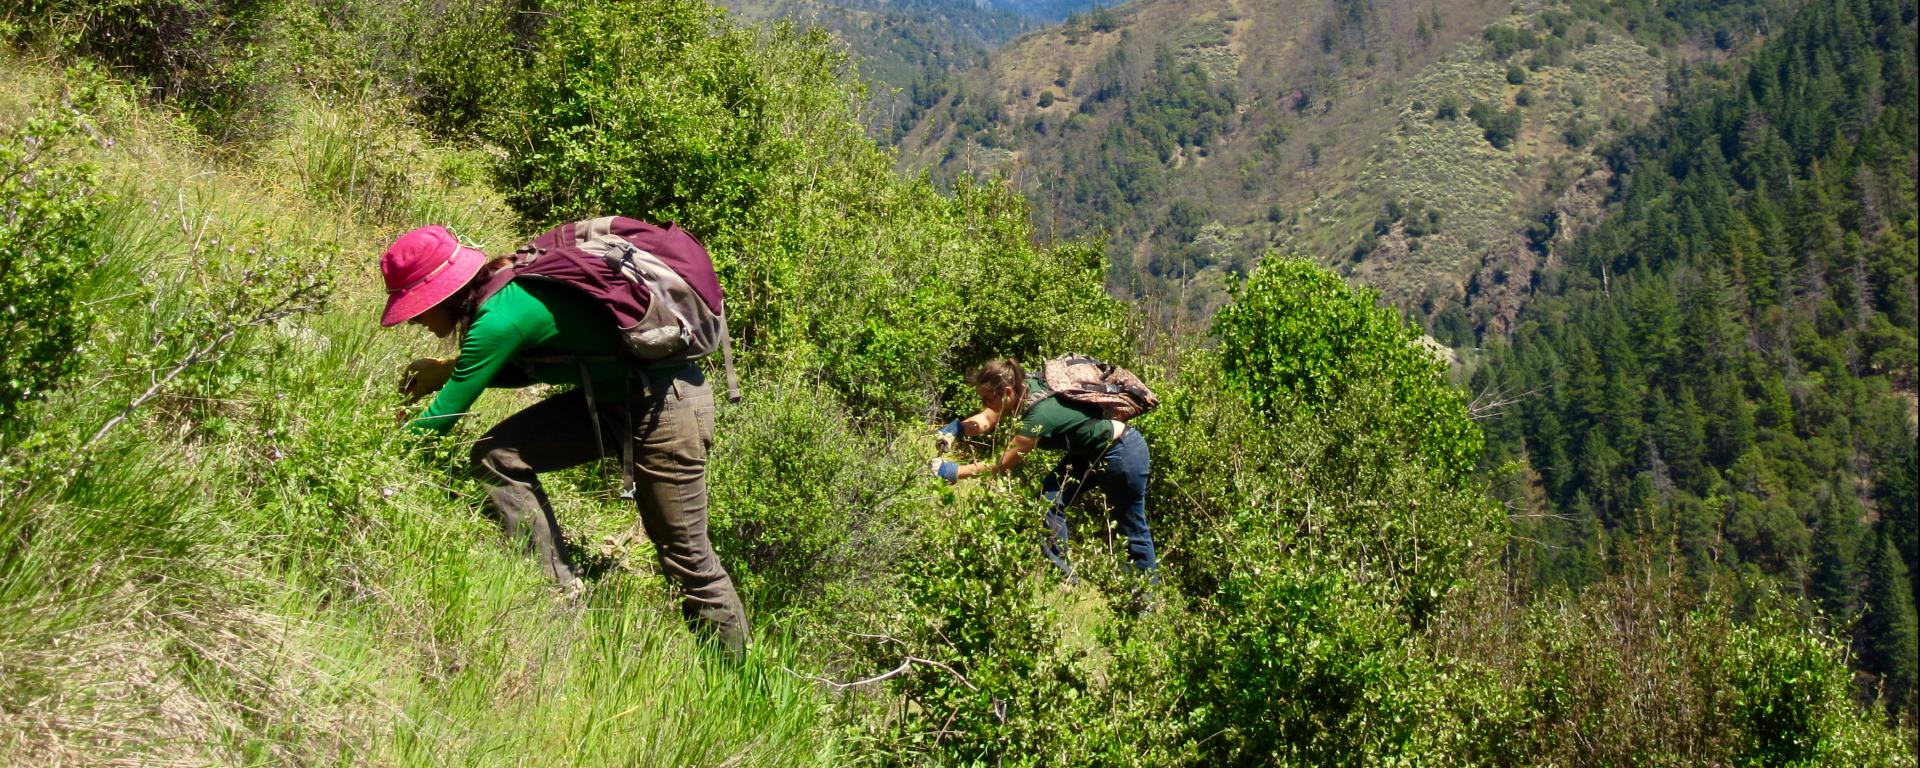 Volunteers for the Salmon River Restoration Council tracking down Italian thistle (Carduus pycnocephalus) plants in Siskiyou County